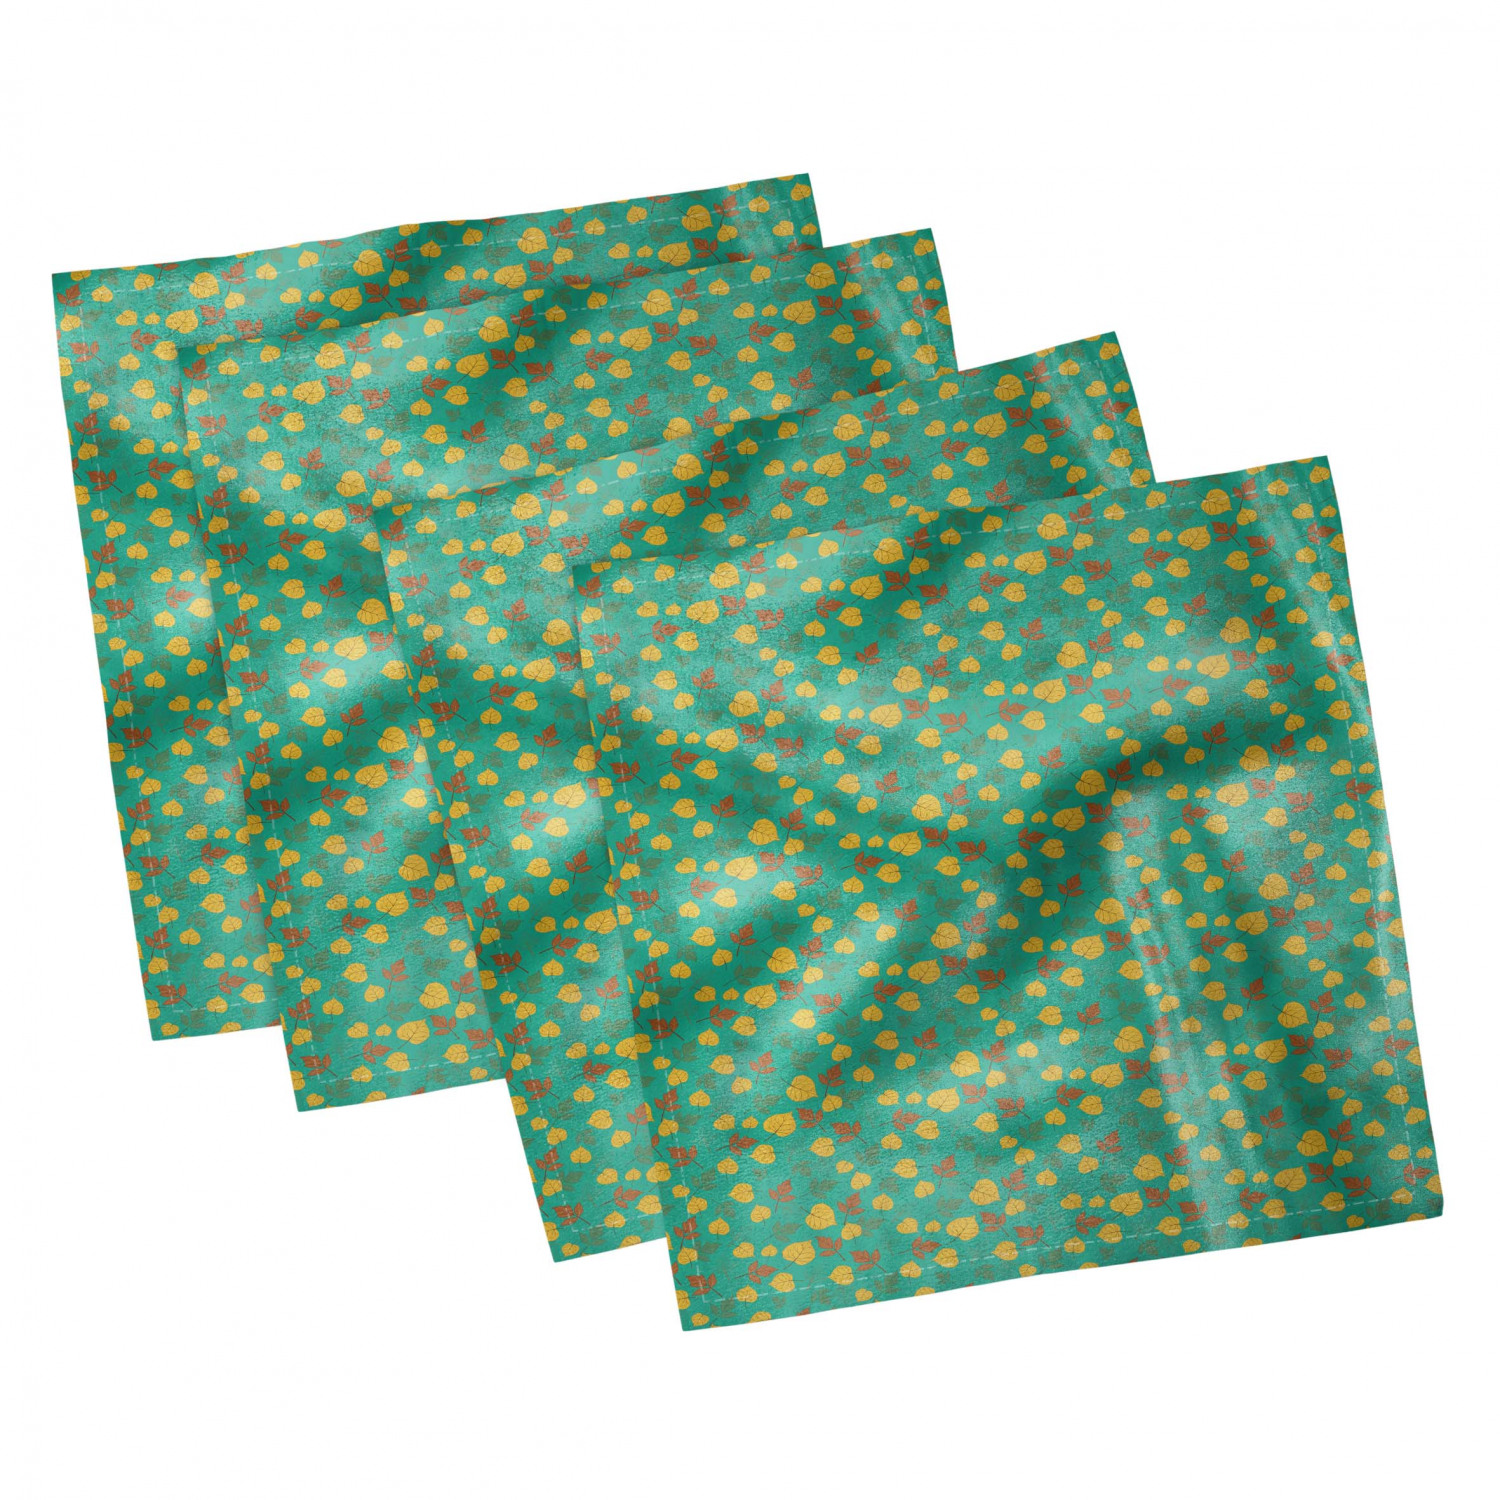 thumbnail 33 - Ambesonne Autumn Fall Decorative Satin Napkins Set of 4 Party Dinner Fabric